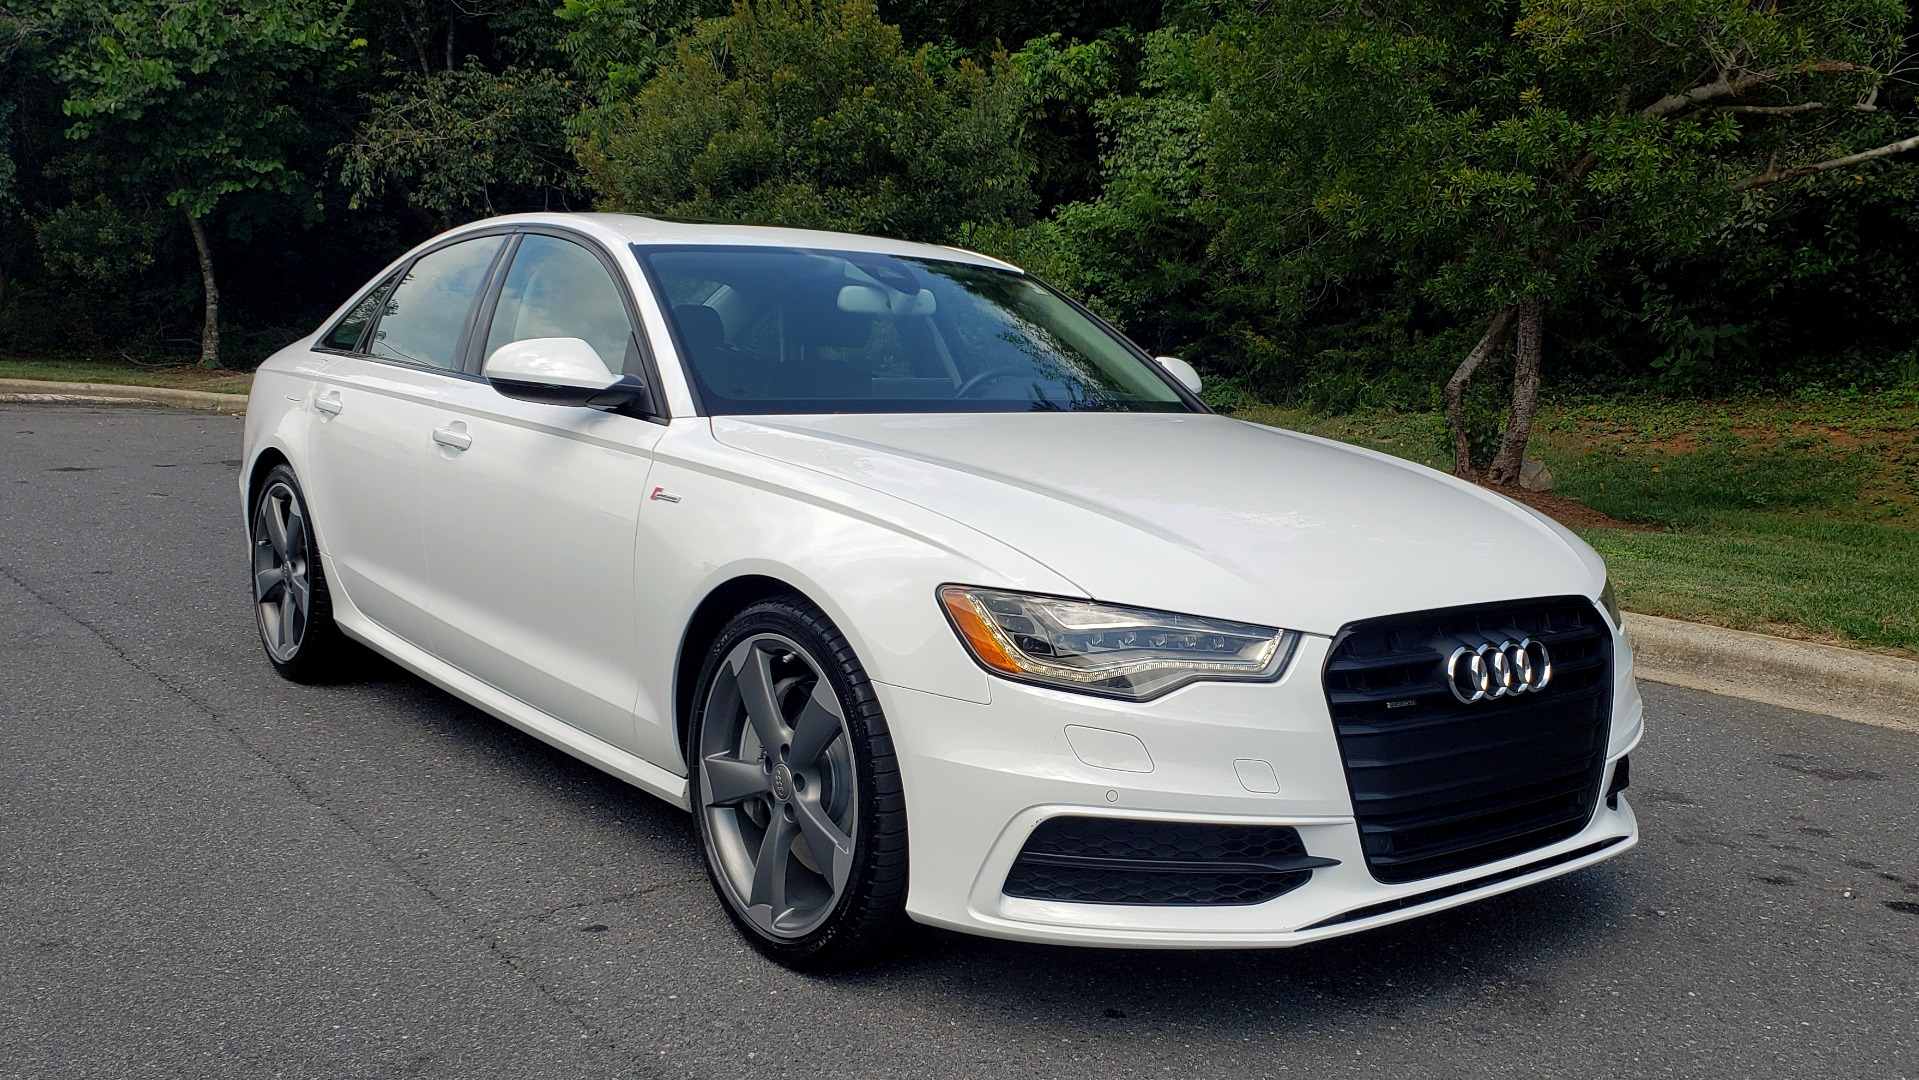 Used 2015 Audi A6 3.0T PRESTIGE / BLACK OPTIC / NAV / BOSE / SUNROOF / REARVIEW for sale Sold at Formula Imports in Charlotte NC 28227 6